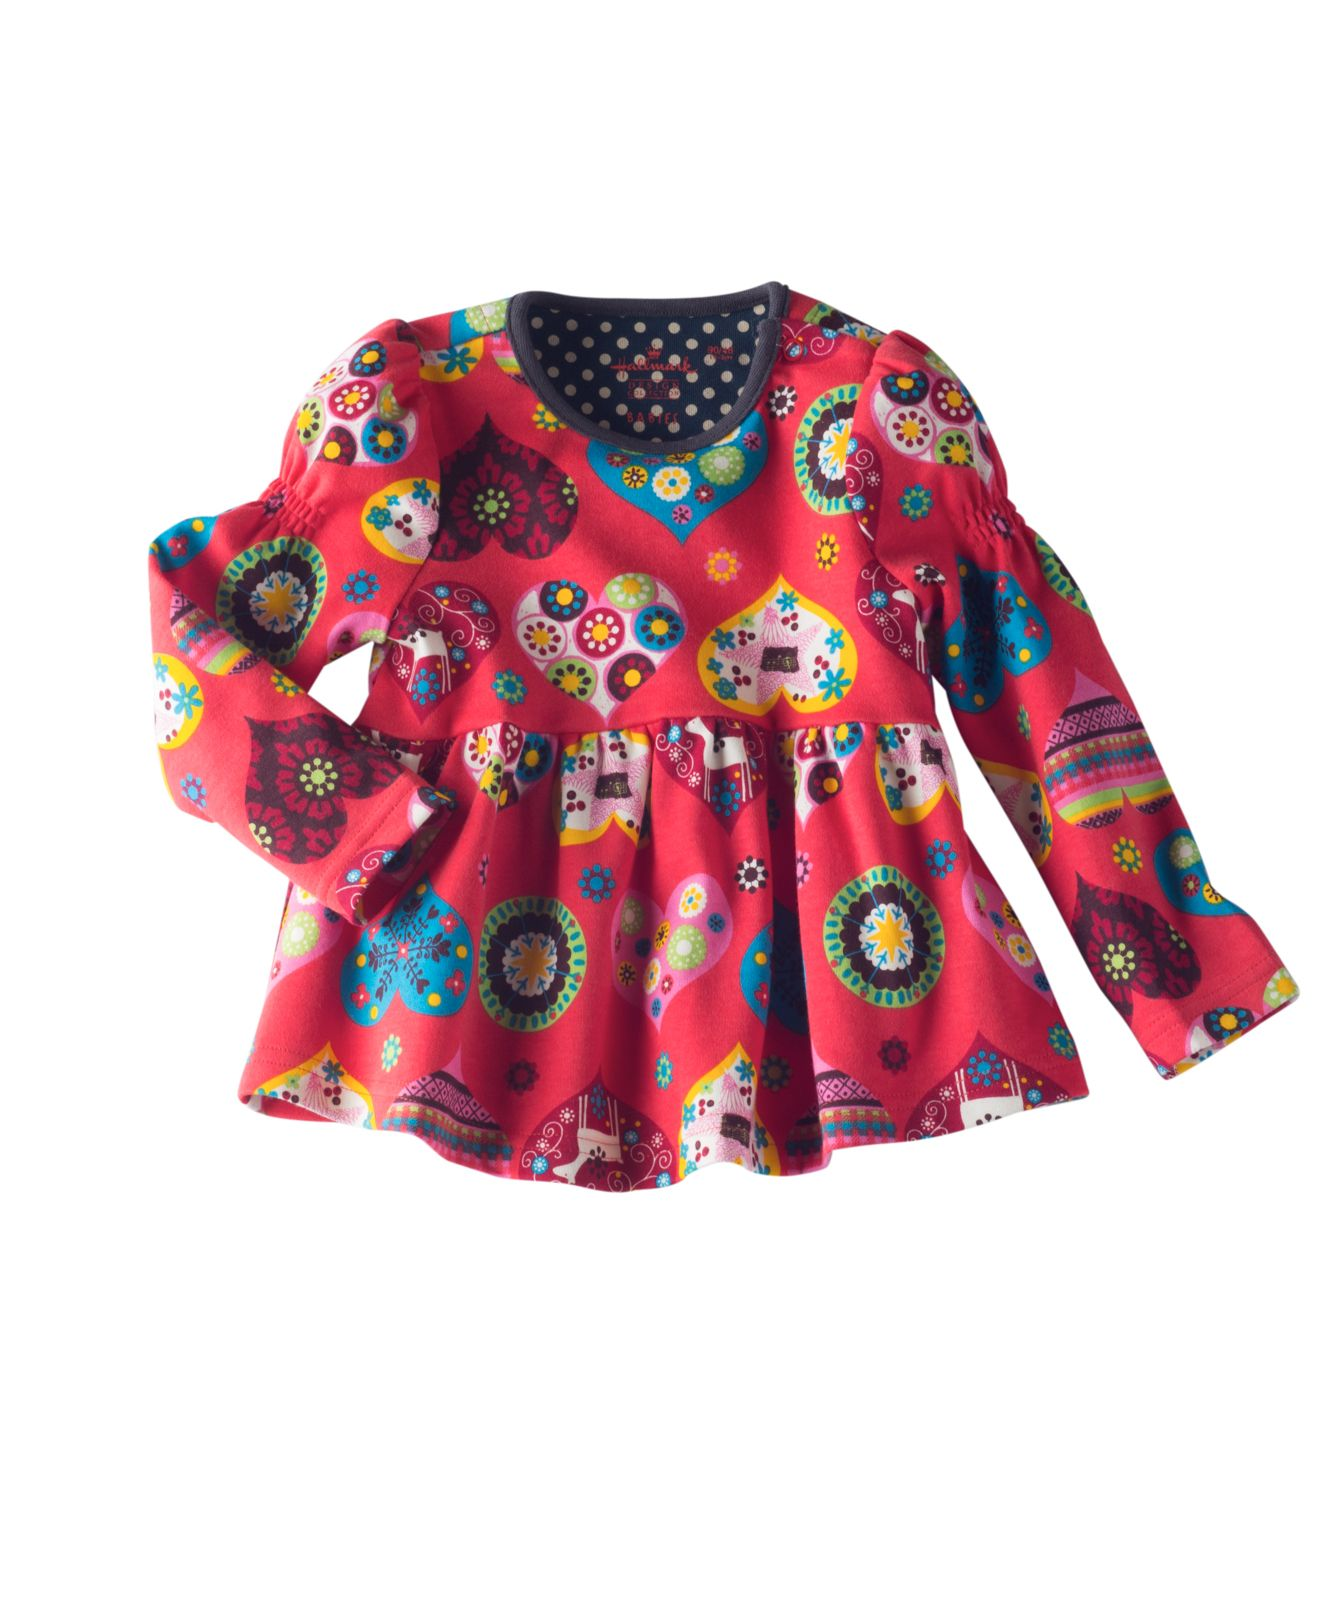 Dress your little darling in this sweet aline top with